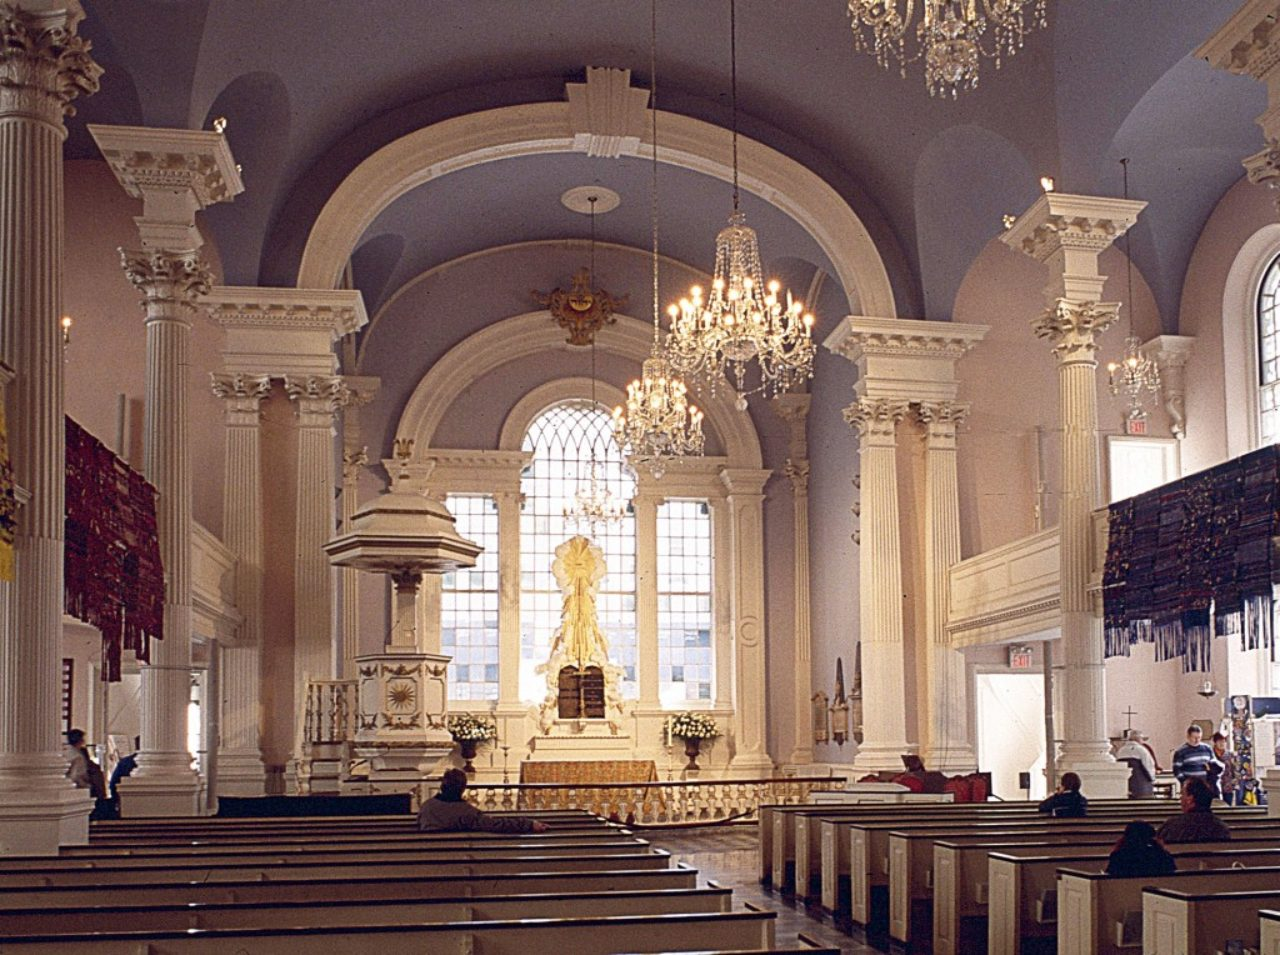 St. Paul's Chapel, interior, New York City